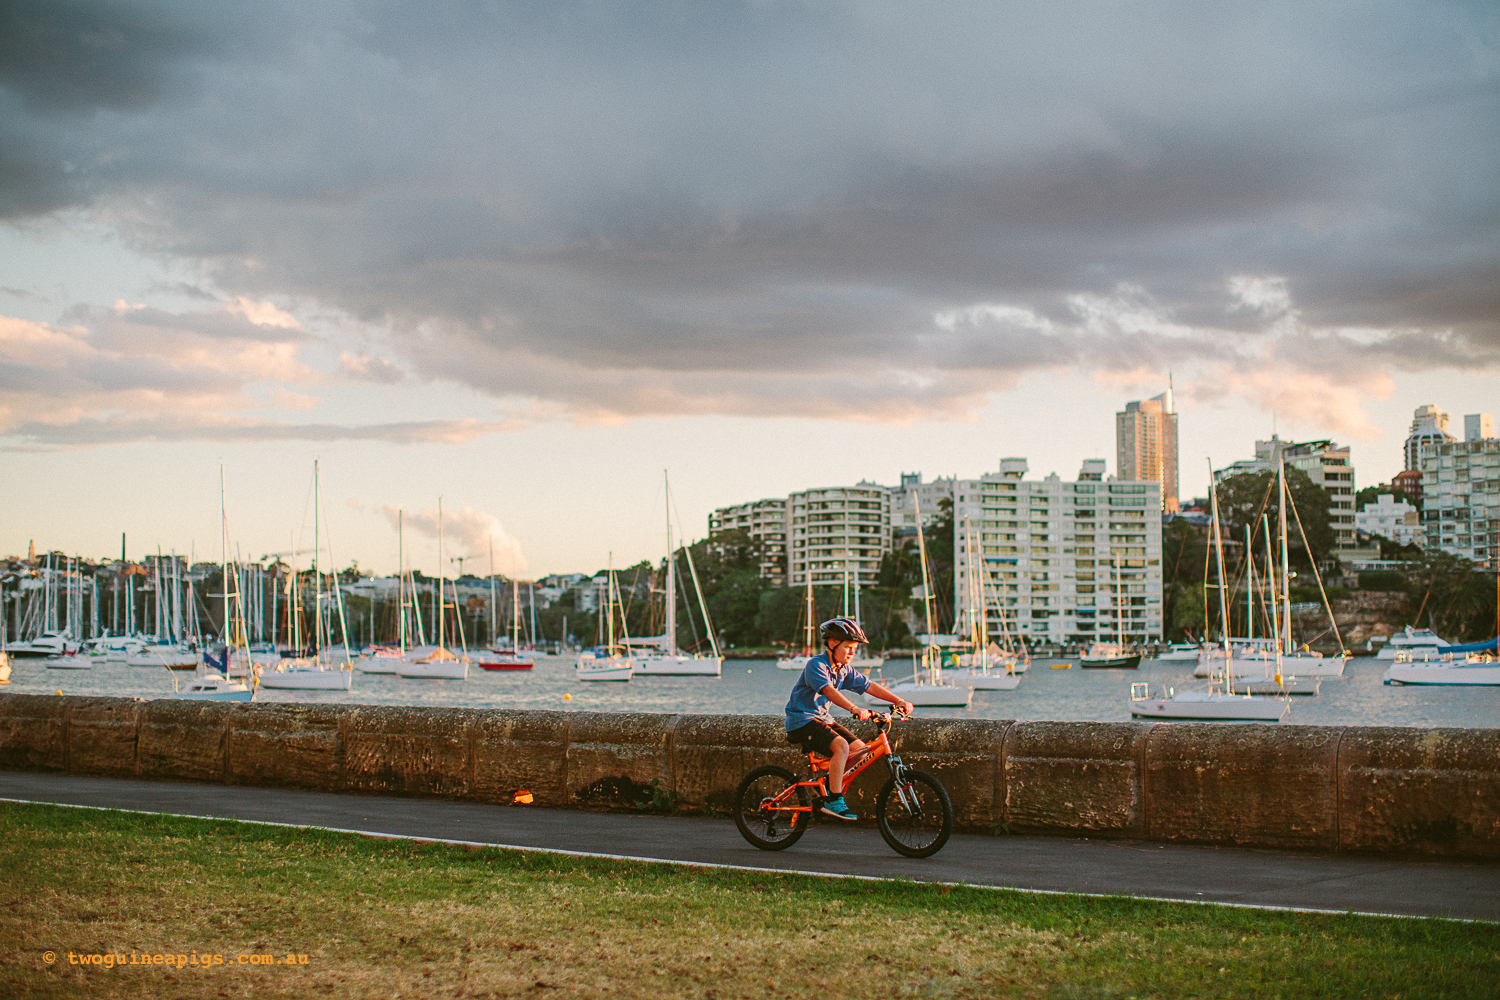 twoguineapigs_rushcutters_bay_winter_sunset_landscapes_1500-12.jpg